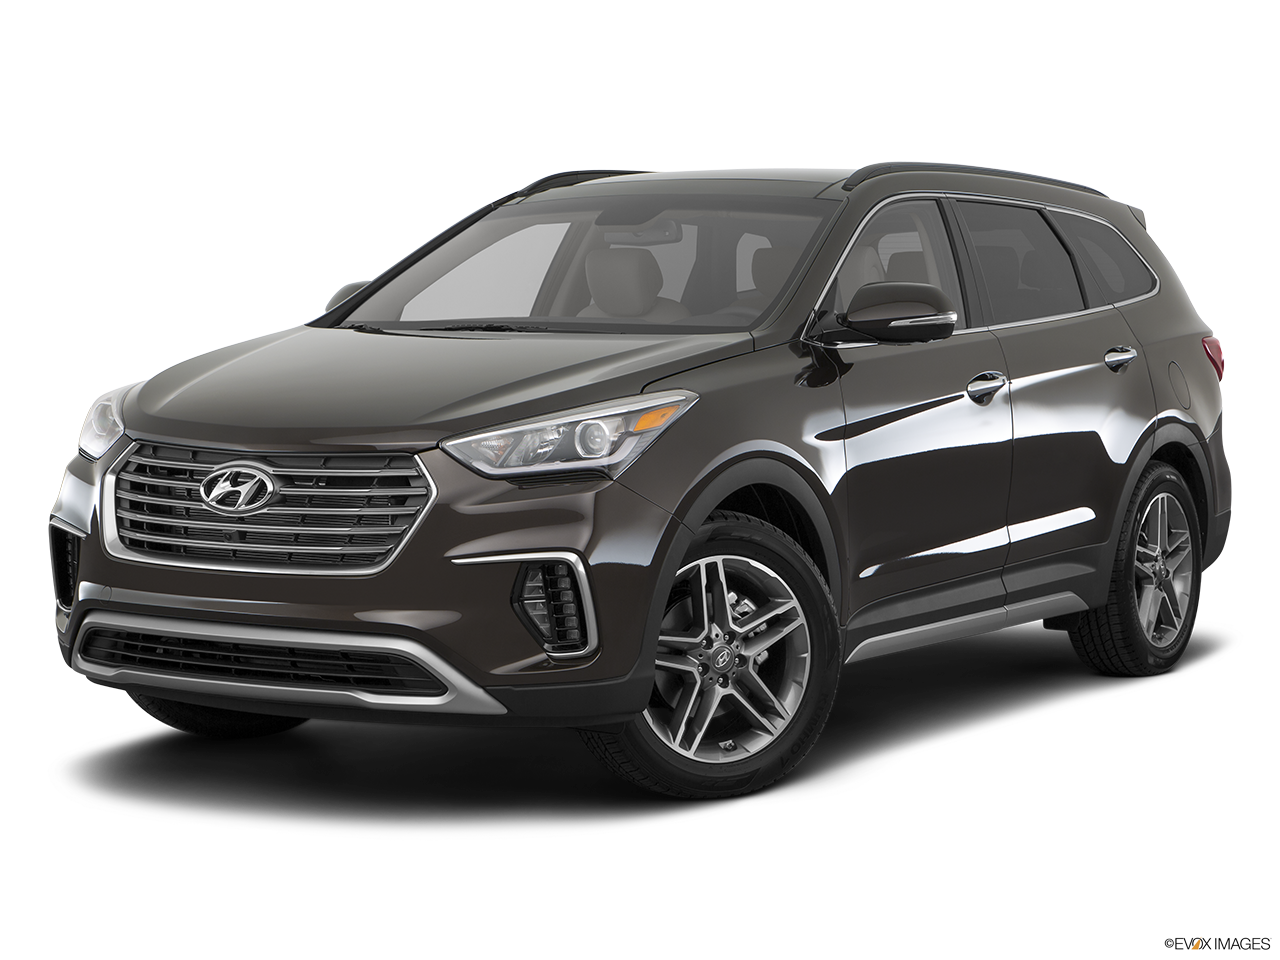 Test Drive A 2017 Hyundai Santa Fe at Premier Hyundai in Tracy